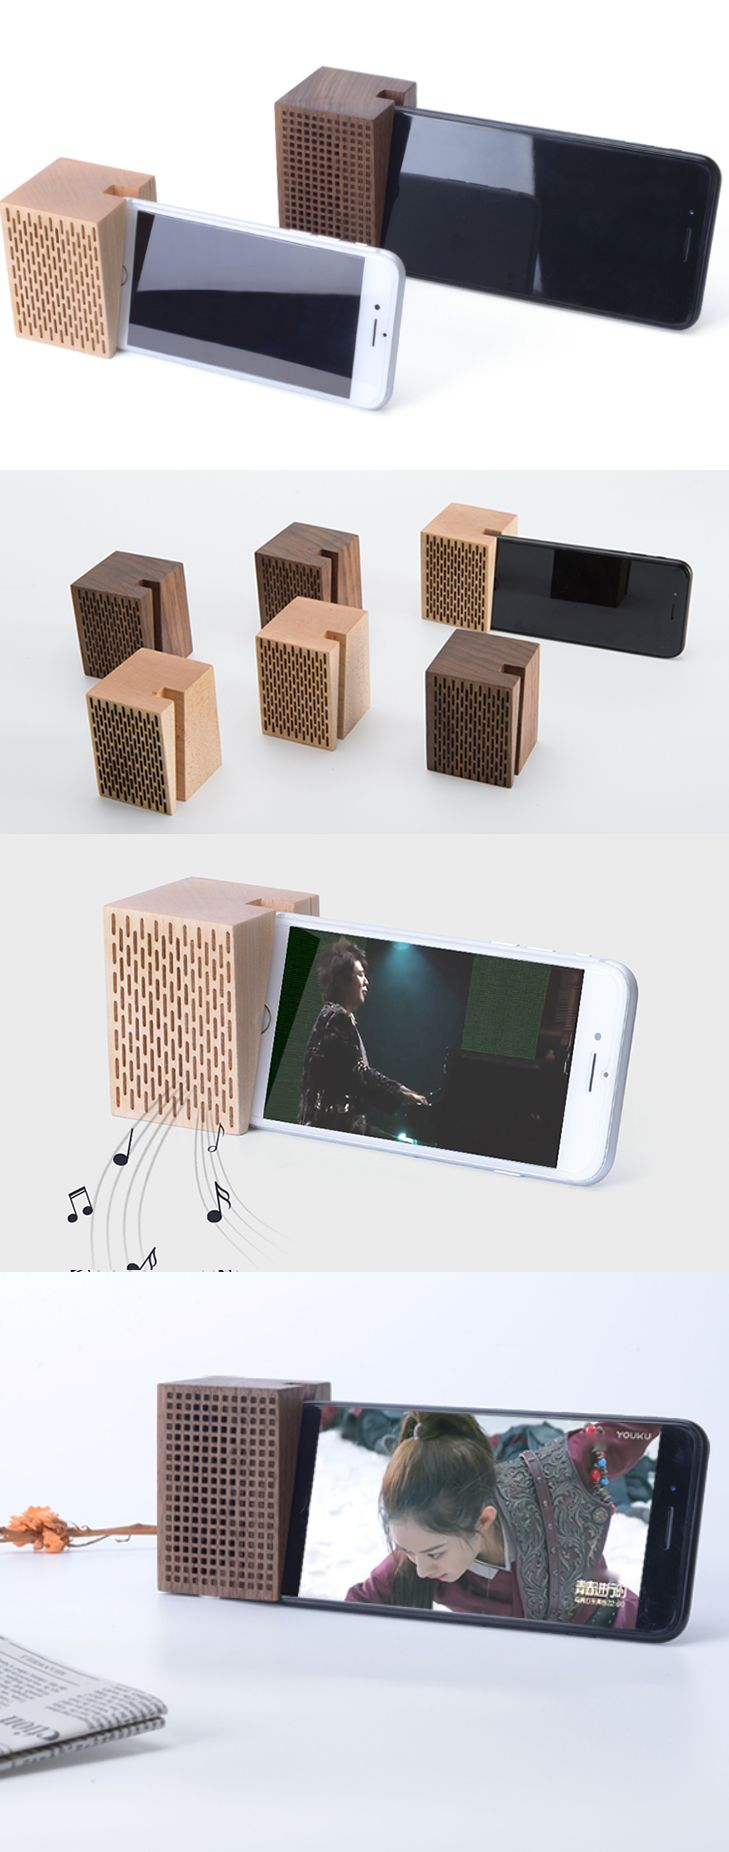 A wooden iPhone Phone SmarPhone Sound amplifier Cell Phone Charging Station Dock Mount Holder Charge Cord Cable Organizer Amplification Stands for iPhone 77 Plus6s6s Plus and other smartphones